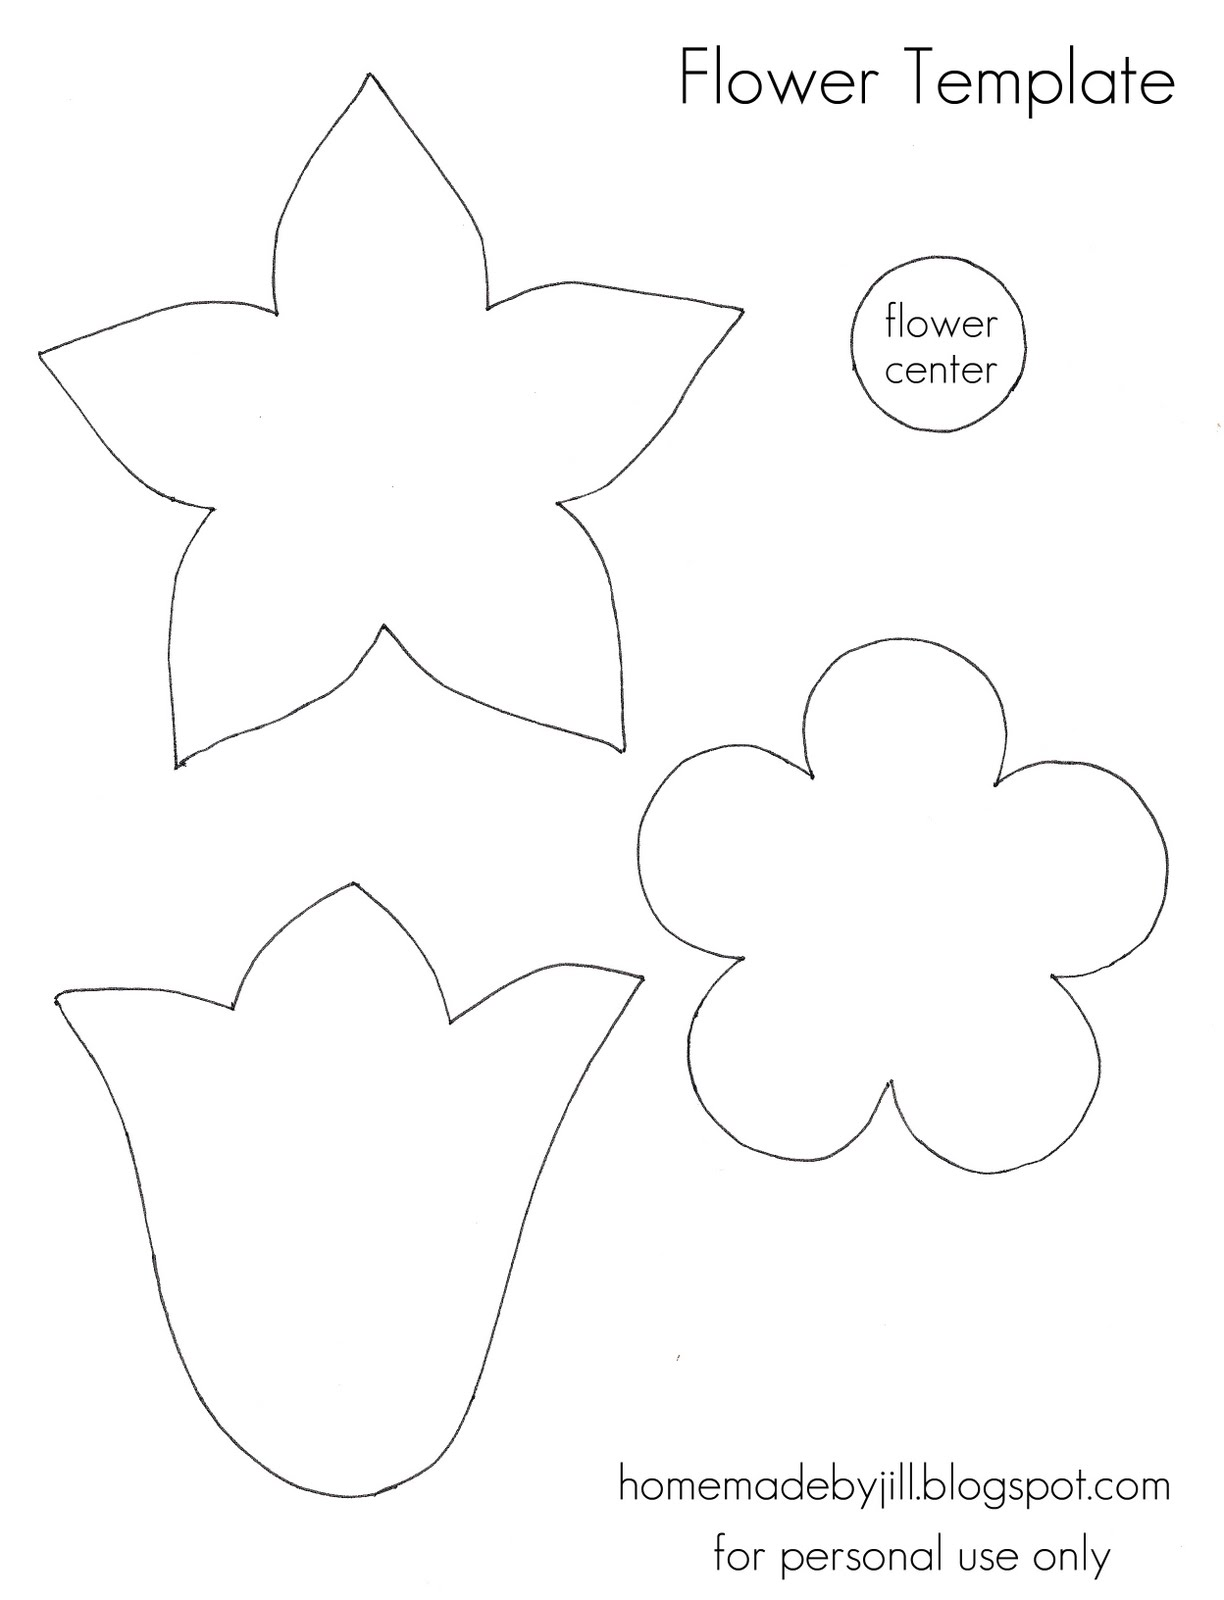 It is a picture of Printable Flower Templates for large